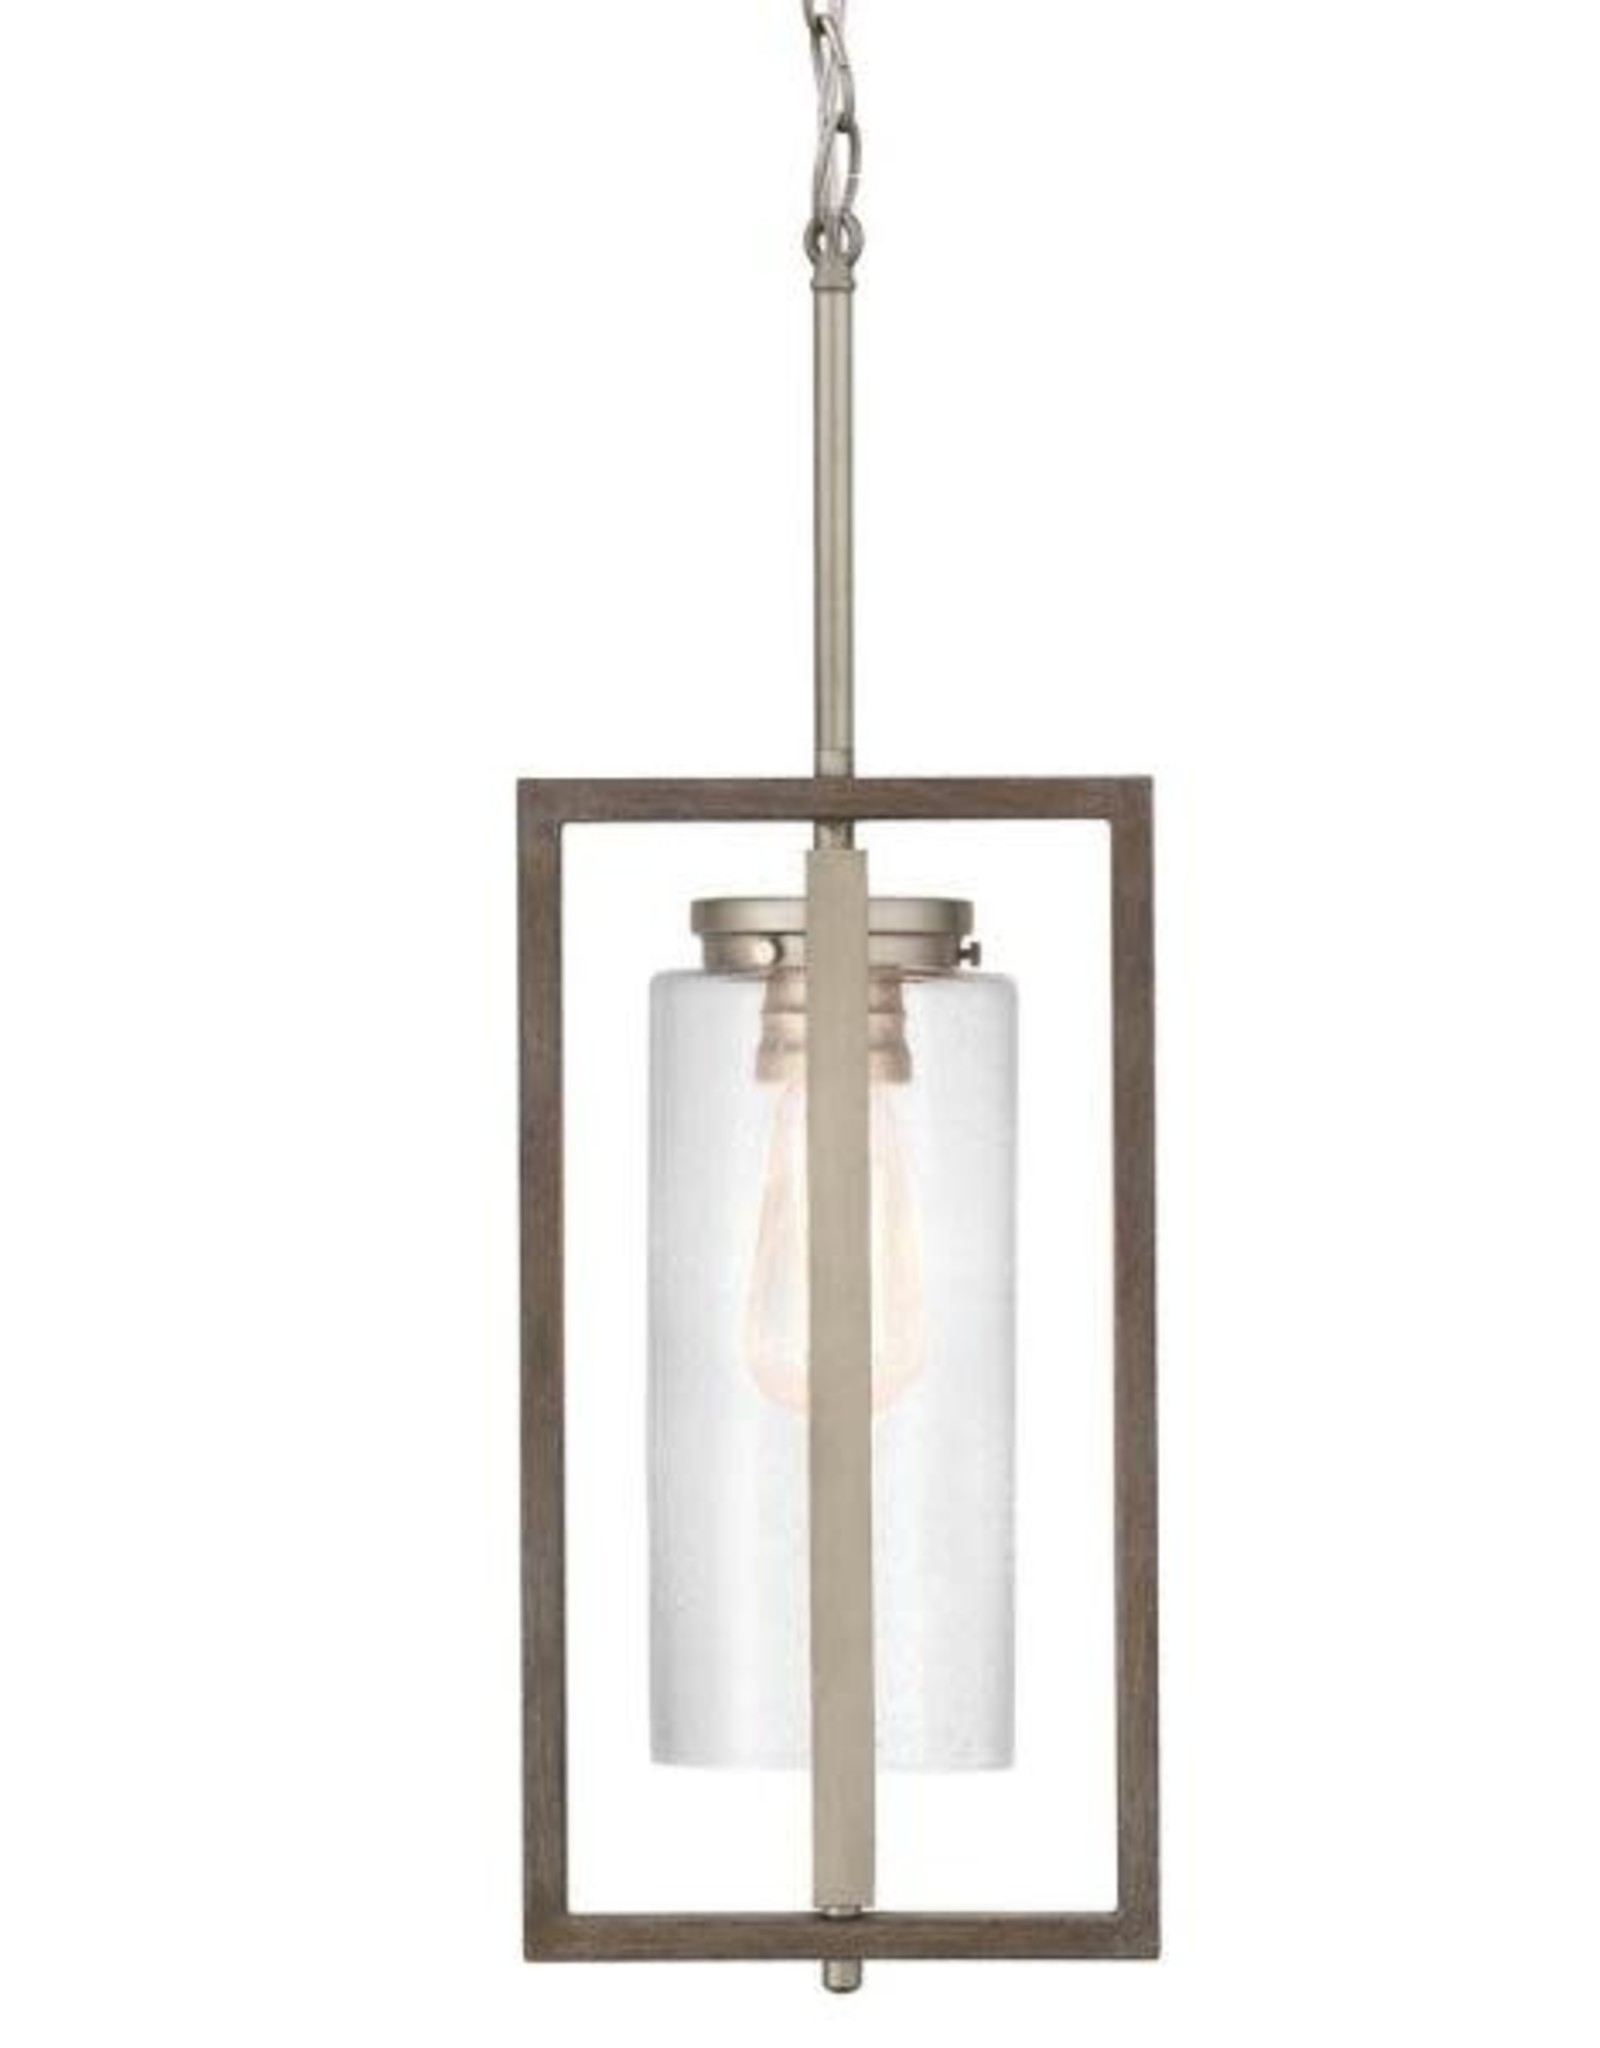 Home Decorators Collection Palermo Grove Antique Nickel 1-Light Hanging Outdoor Lantern with Weathered Gray Wood Accents